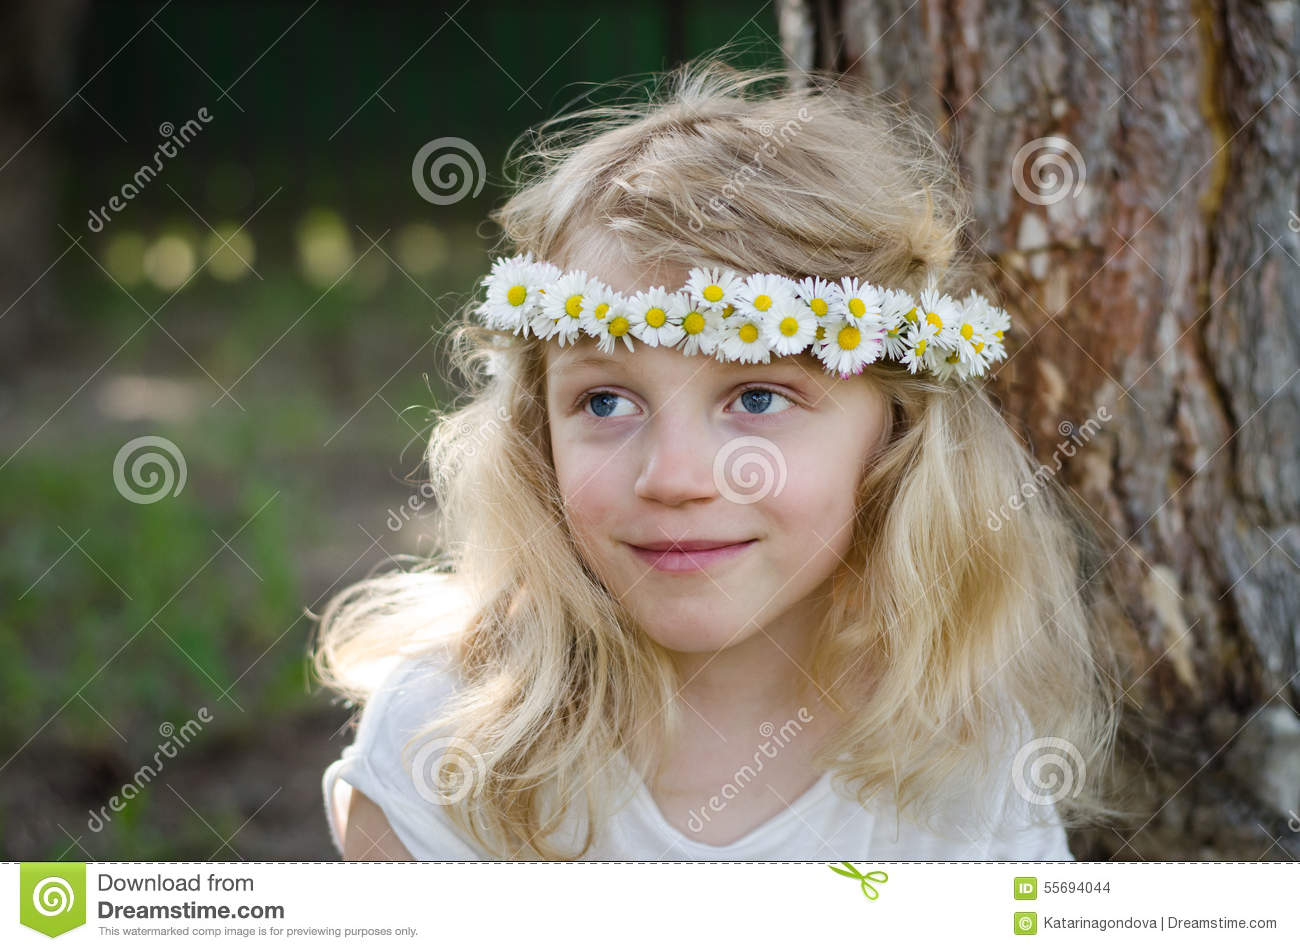 Smiling Blond Girl With Big Blue Eyes And With Daisies On Head Stock